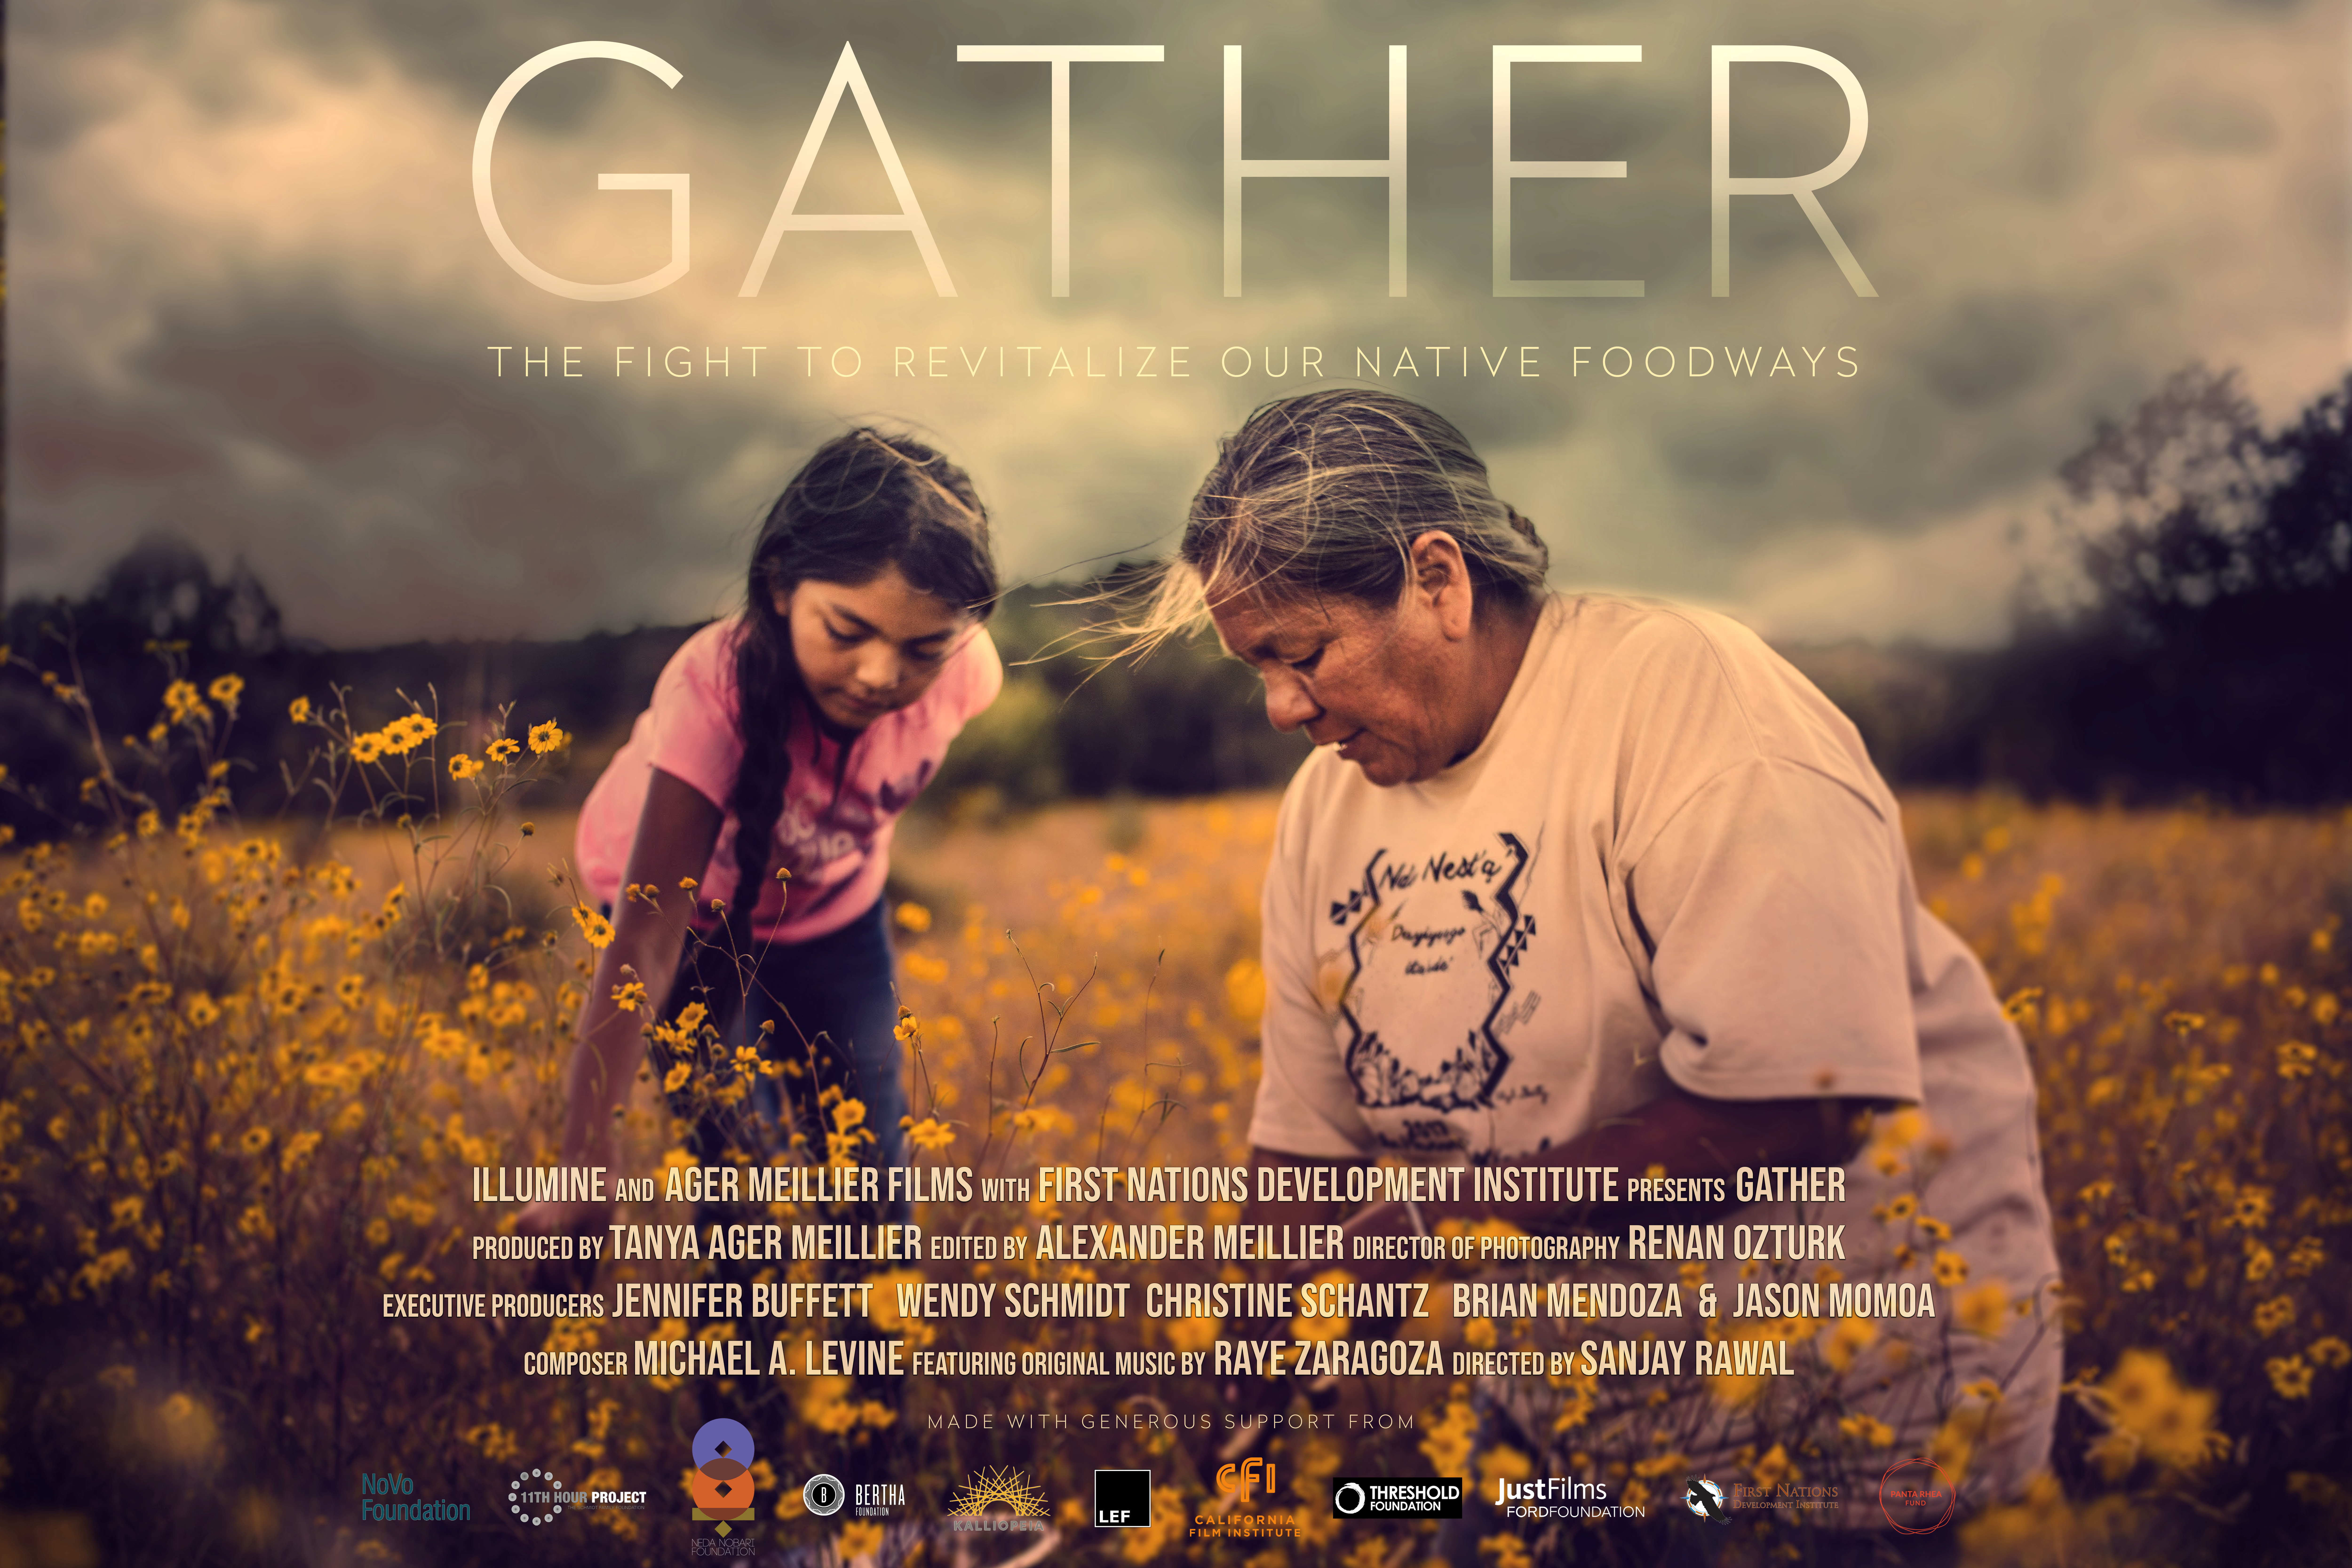 Promotional image for the film Gather. Image or woman and girl in a field of yellow flowers.